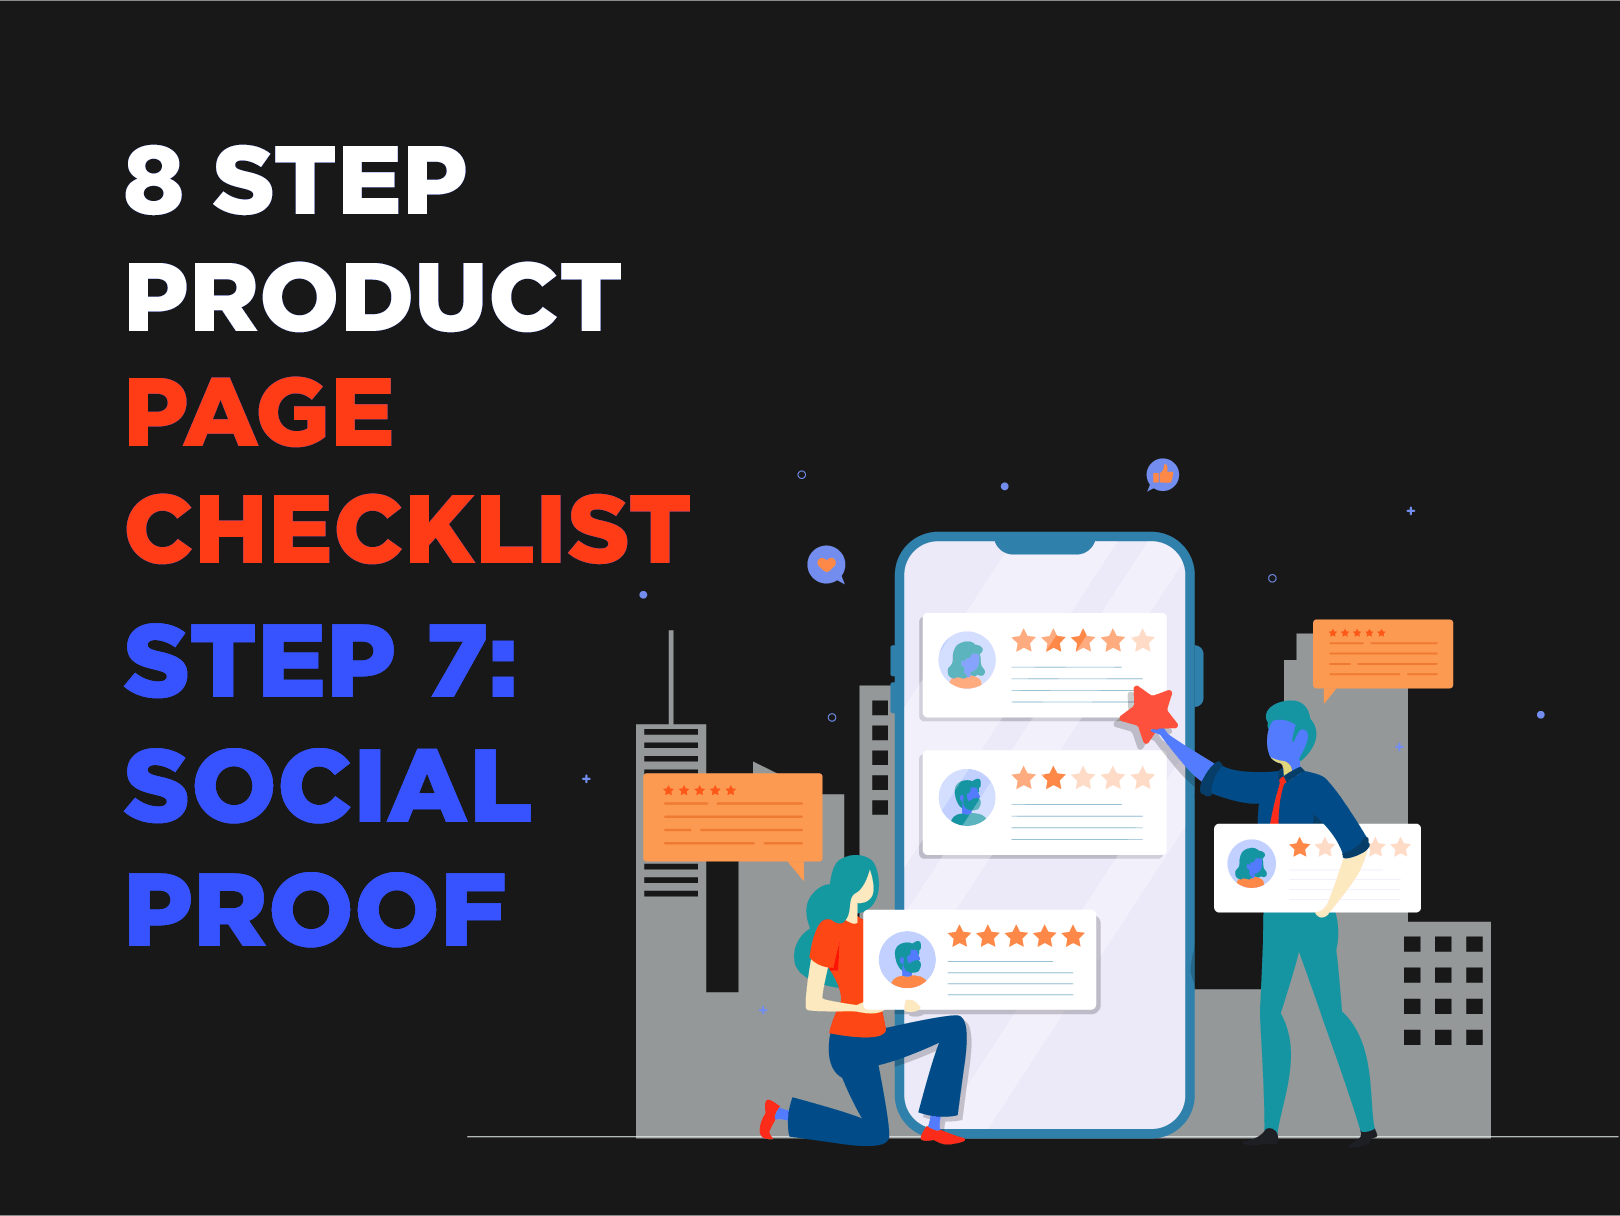 8 Step Product Page Checklist – Step 7: Social Proof